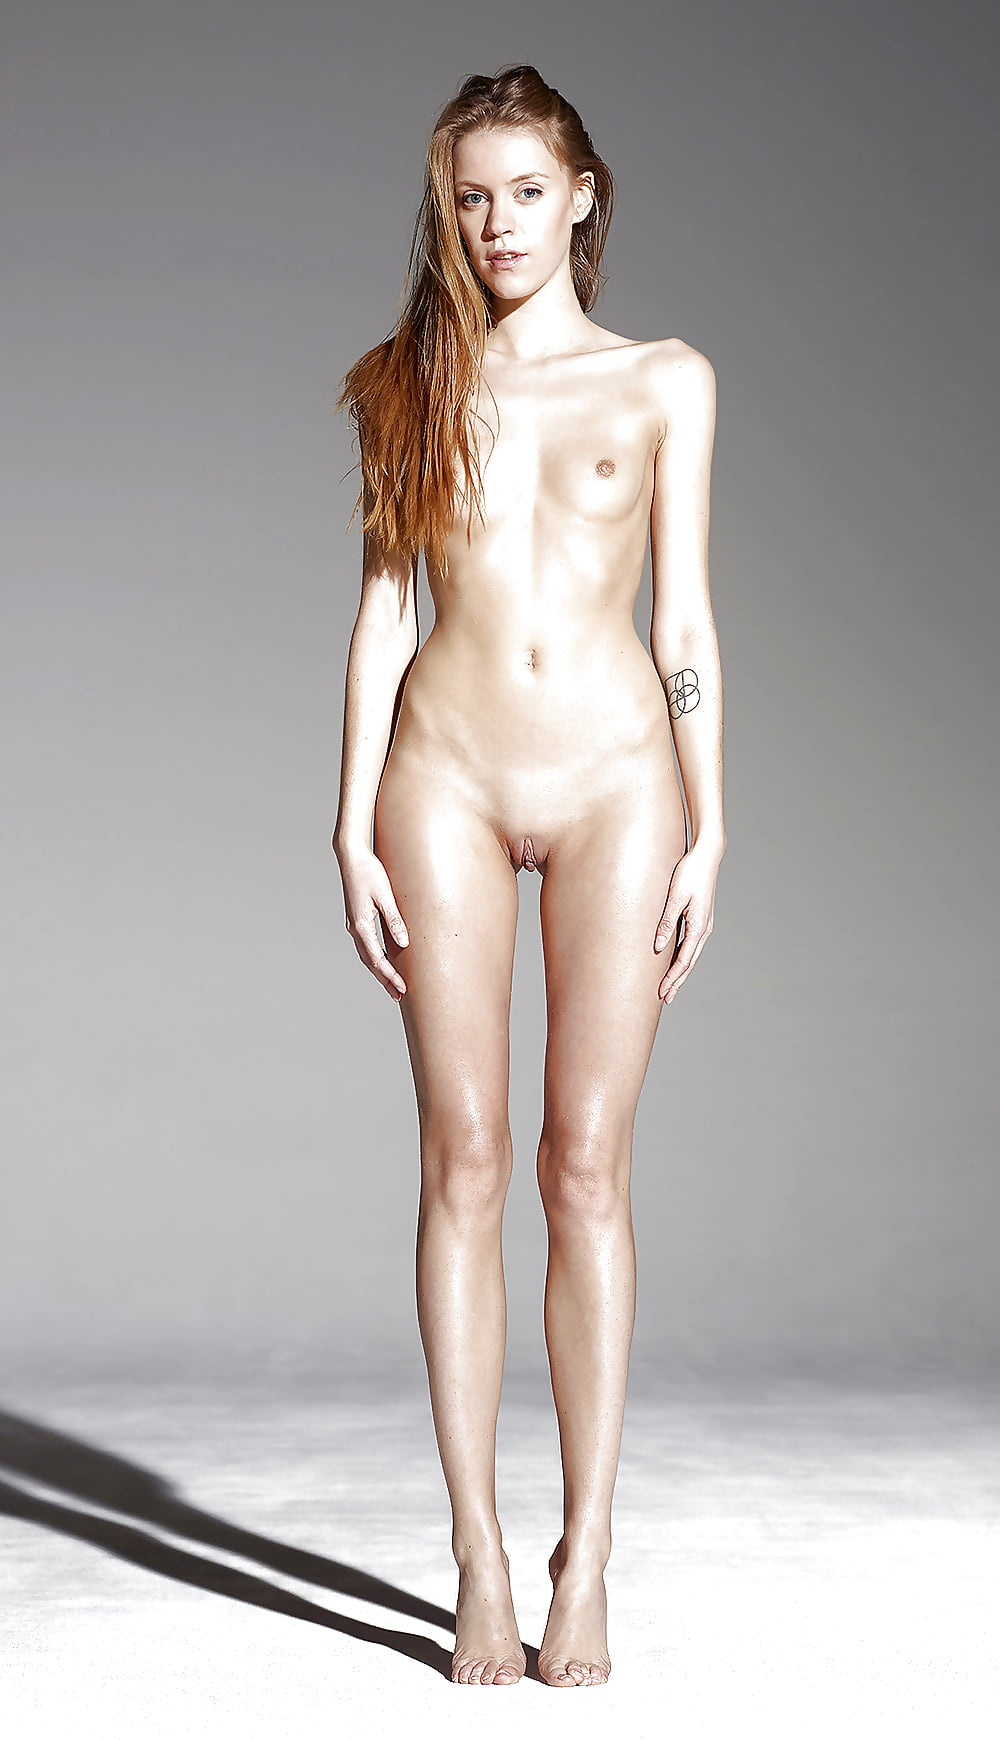 Tall skinny blonde nude